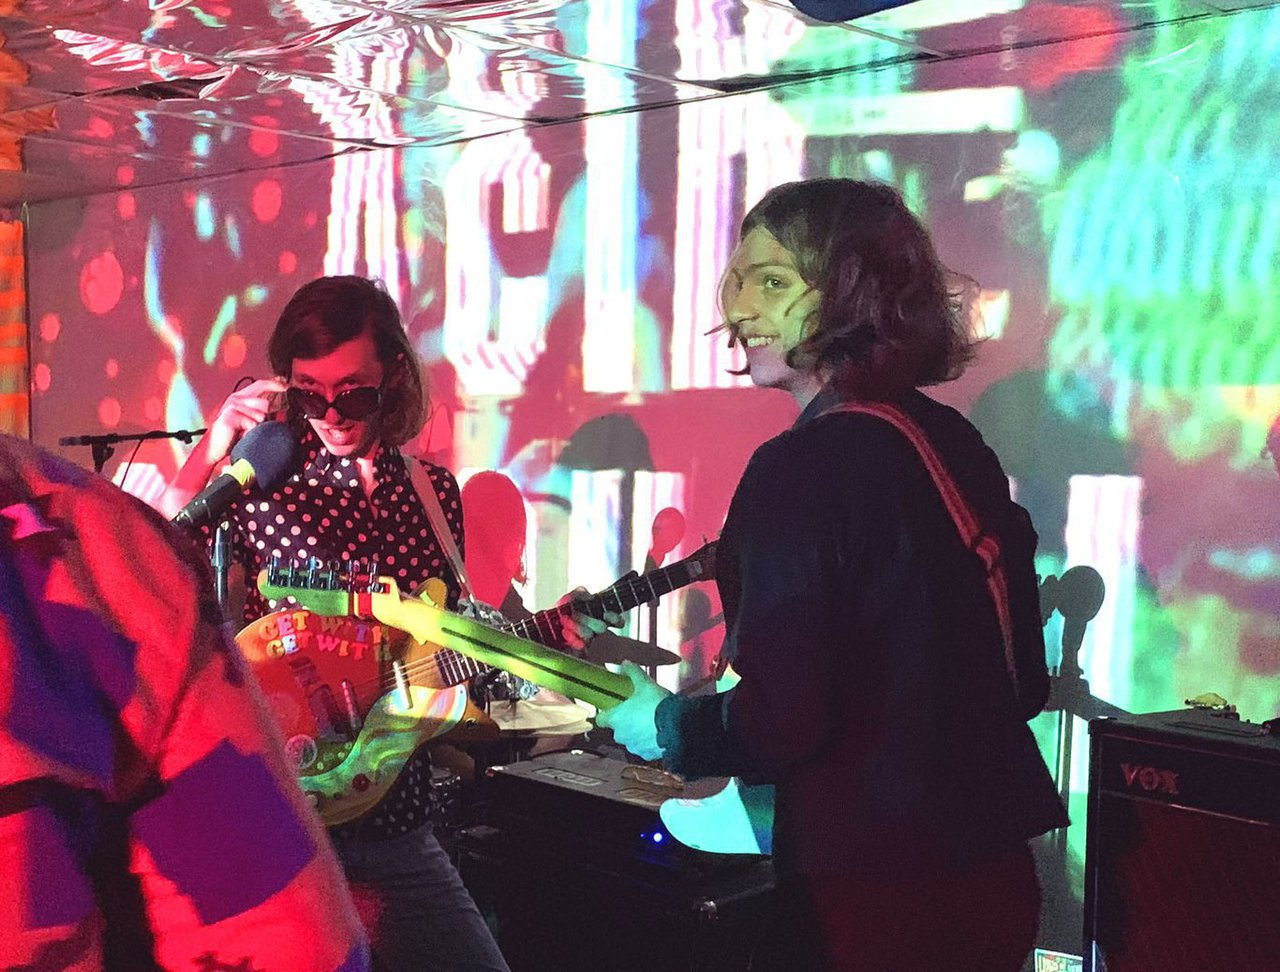 SXSW Snapshot: Acid Carousel at The Electric Church